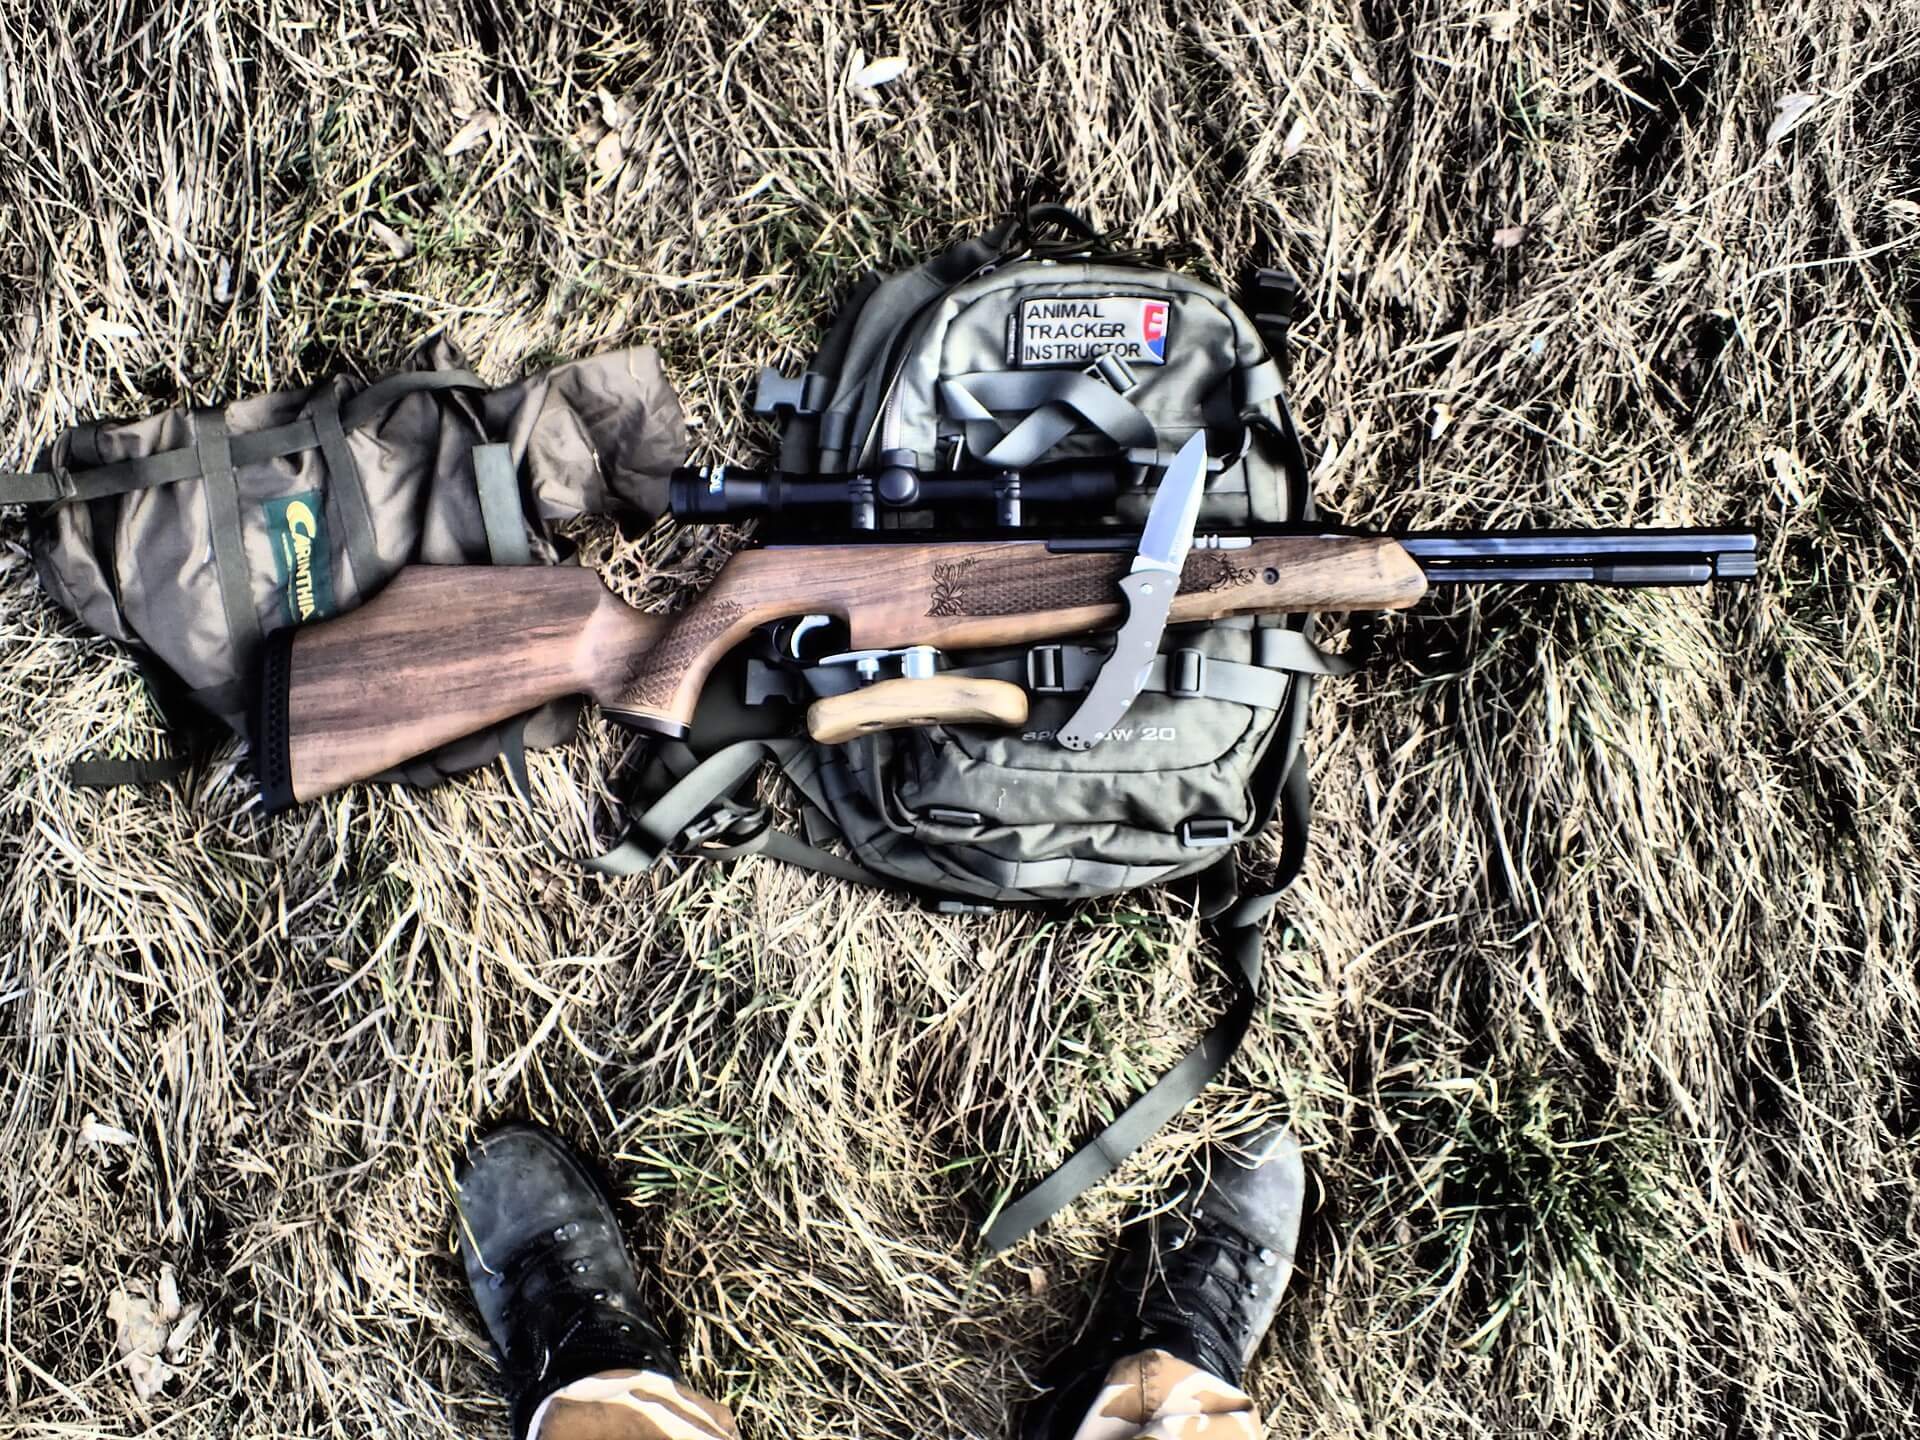 Best Pellet Guns Reviewed & Rated for Quality